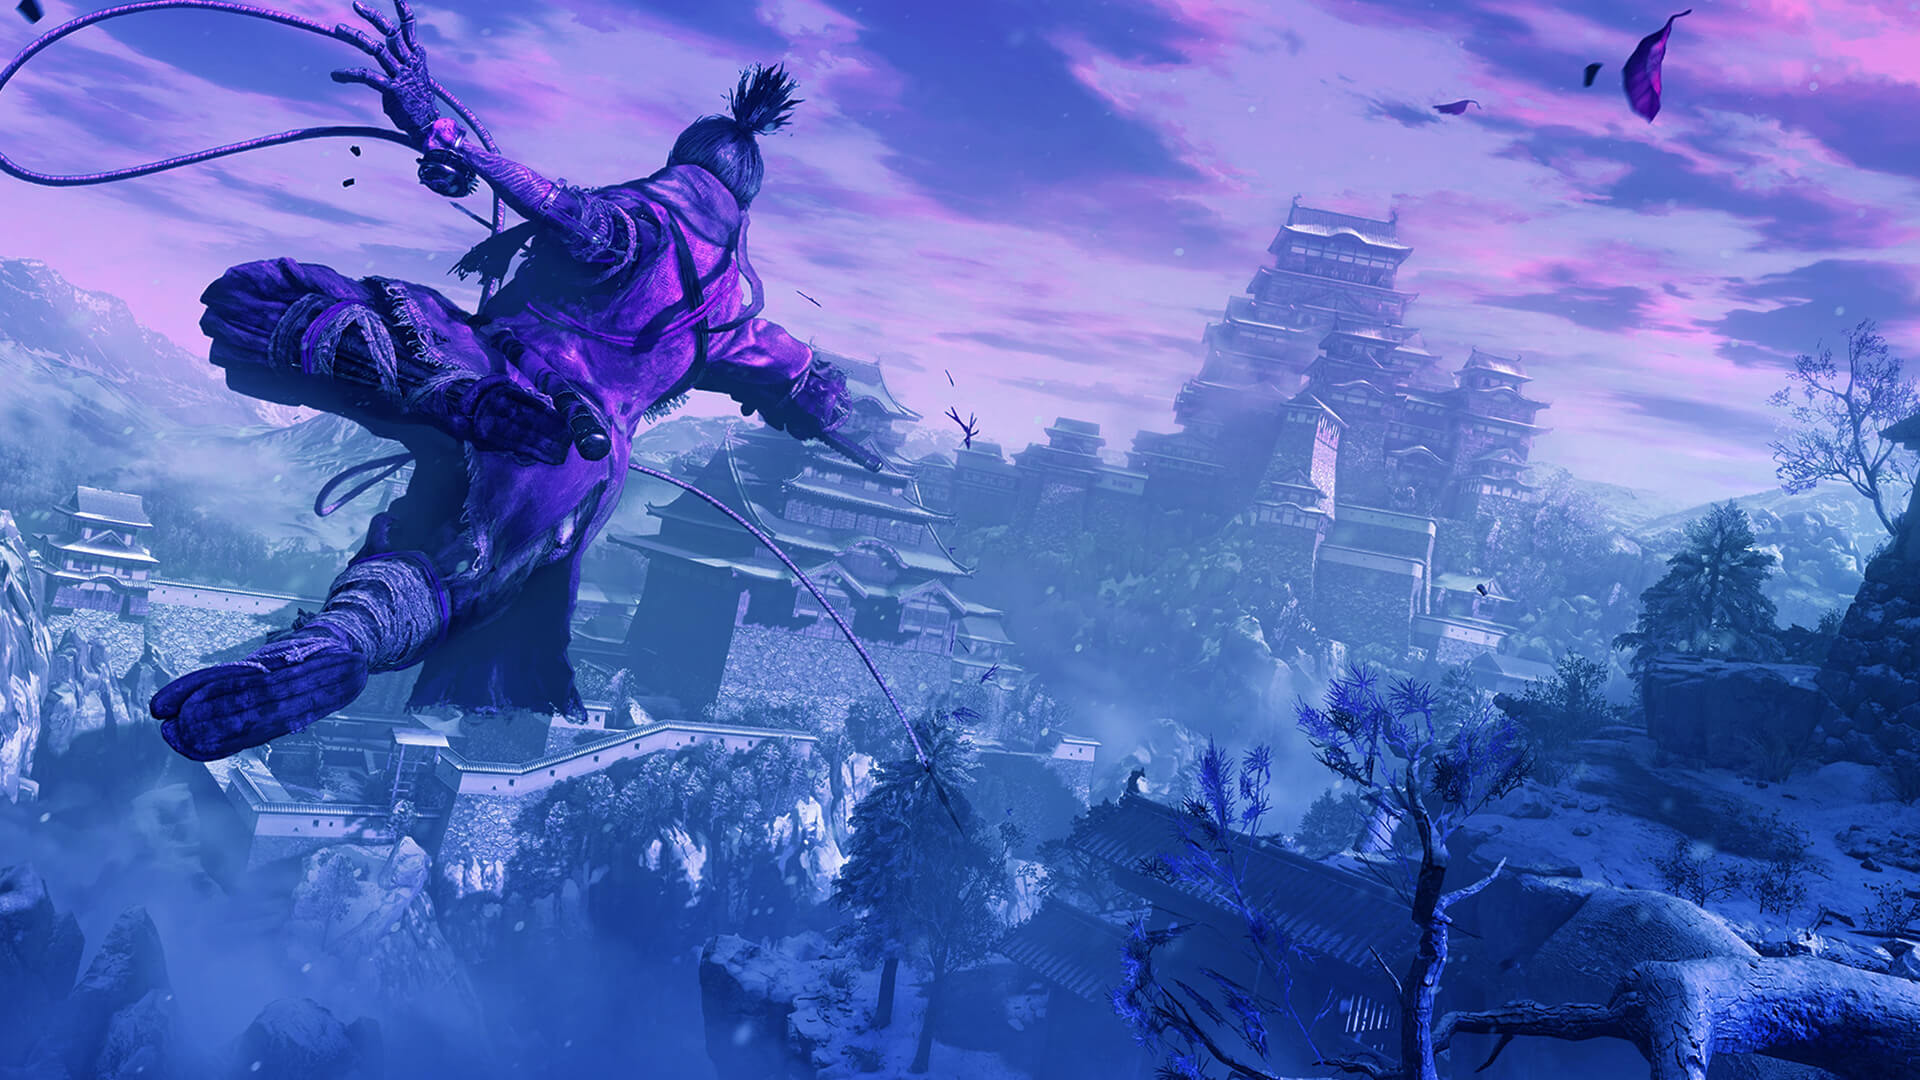 sekiro shadows die twice wallpaper 67293